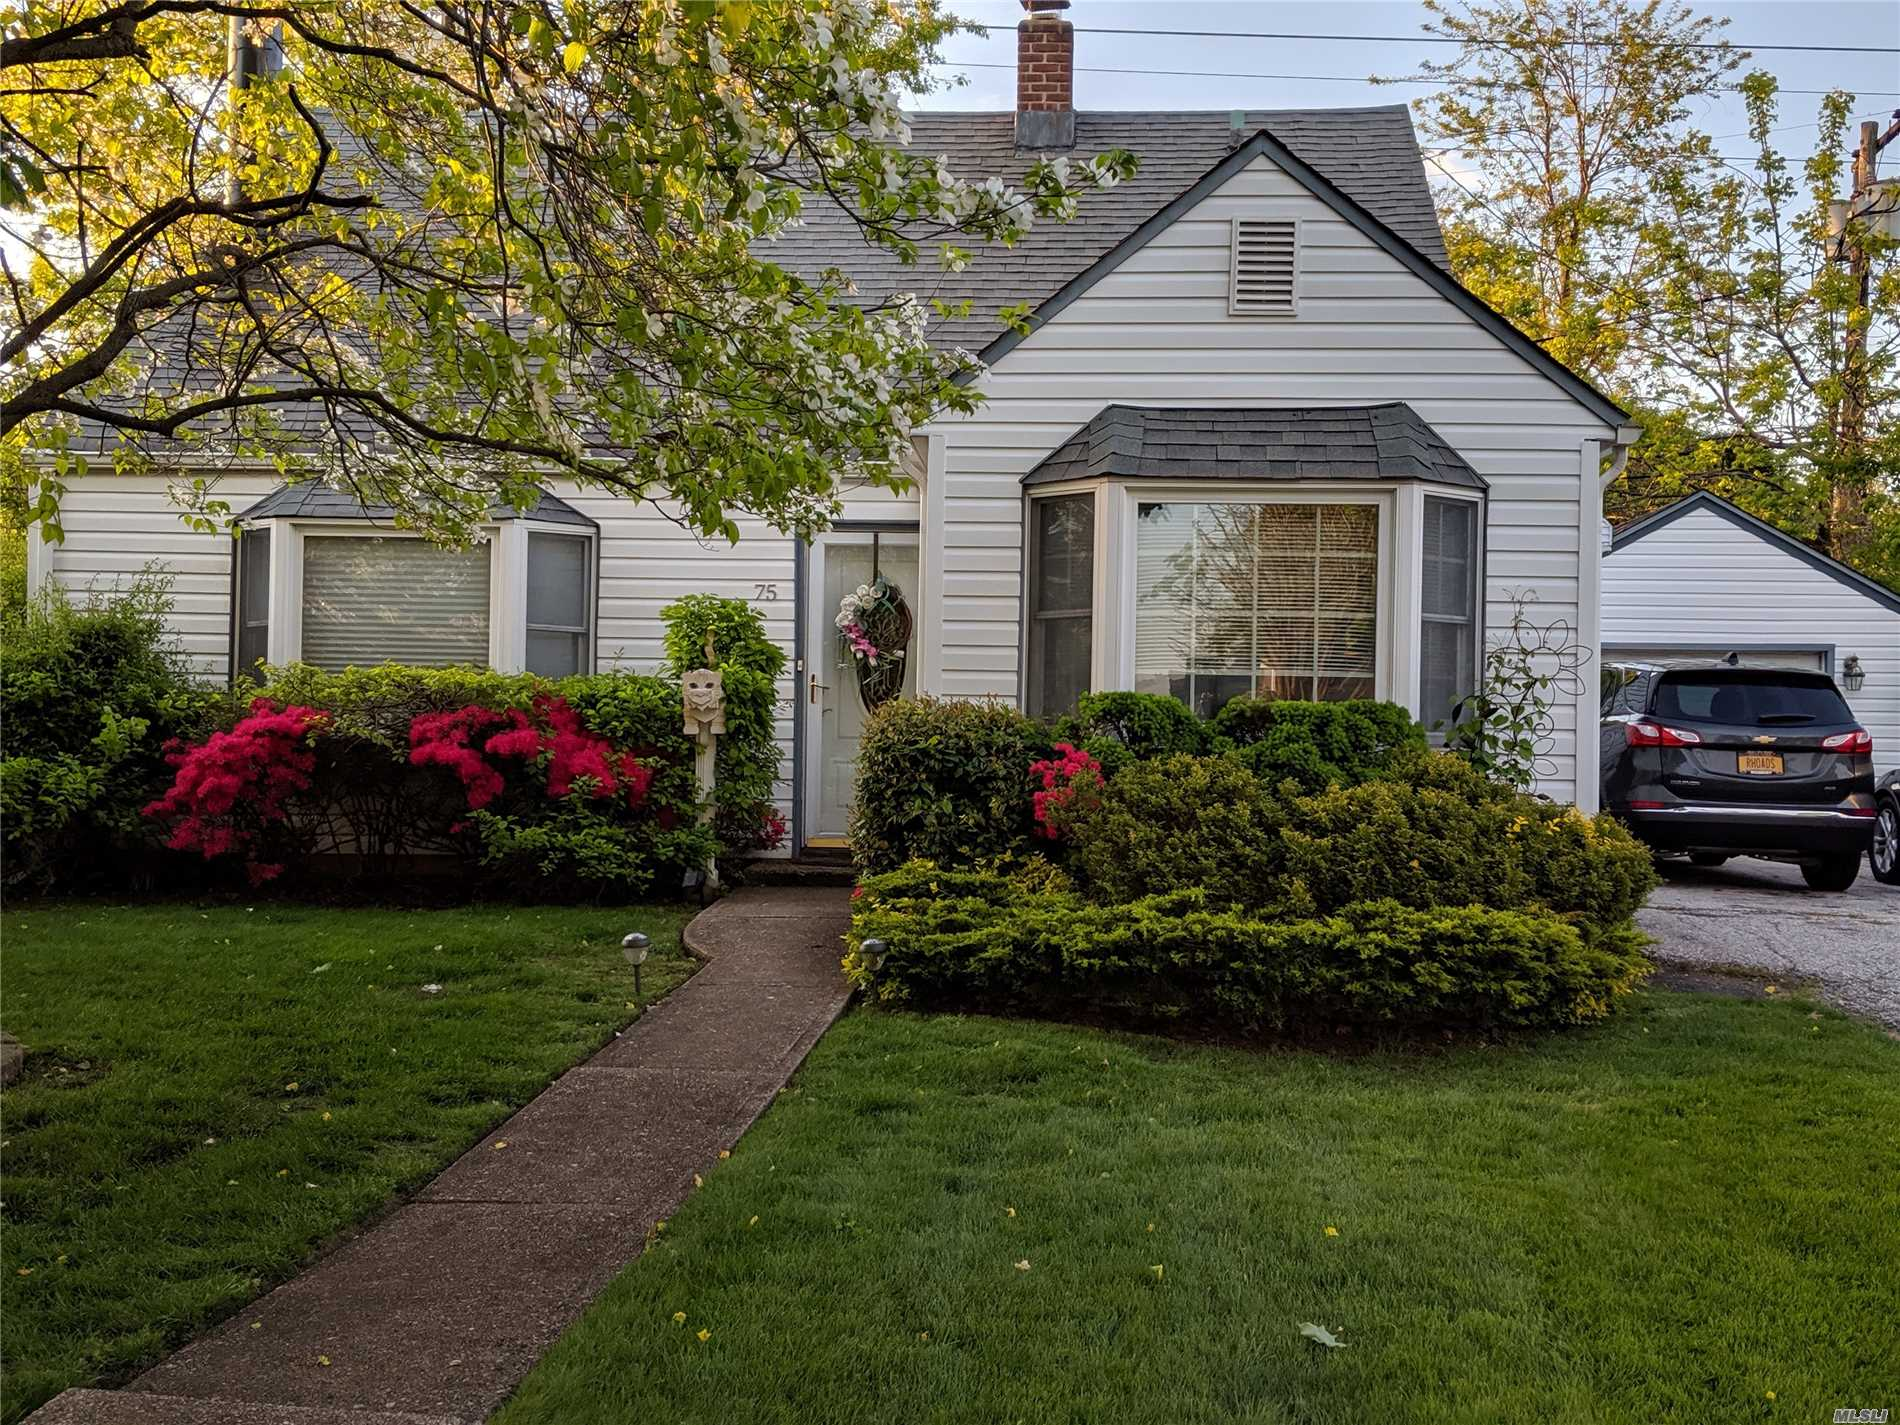 Must See This Expanded New Englander. Offering Updated Extended Kitchen. Expanded Great Room Opening To Deck And Yard. Custom Fireplace. Many Major Updates New Full Bath. Wow Low Taxes Do Not Reflect Star Savings !! Close To All Levittown Pools With Parks, Shopping, Schools and Major Parkways.LOW LOW TAXES!!!